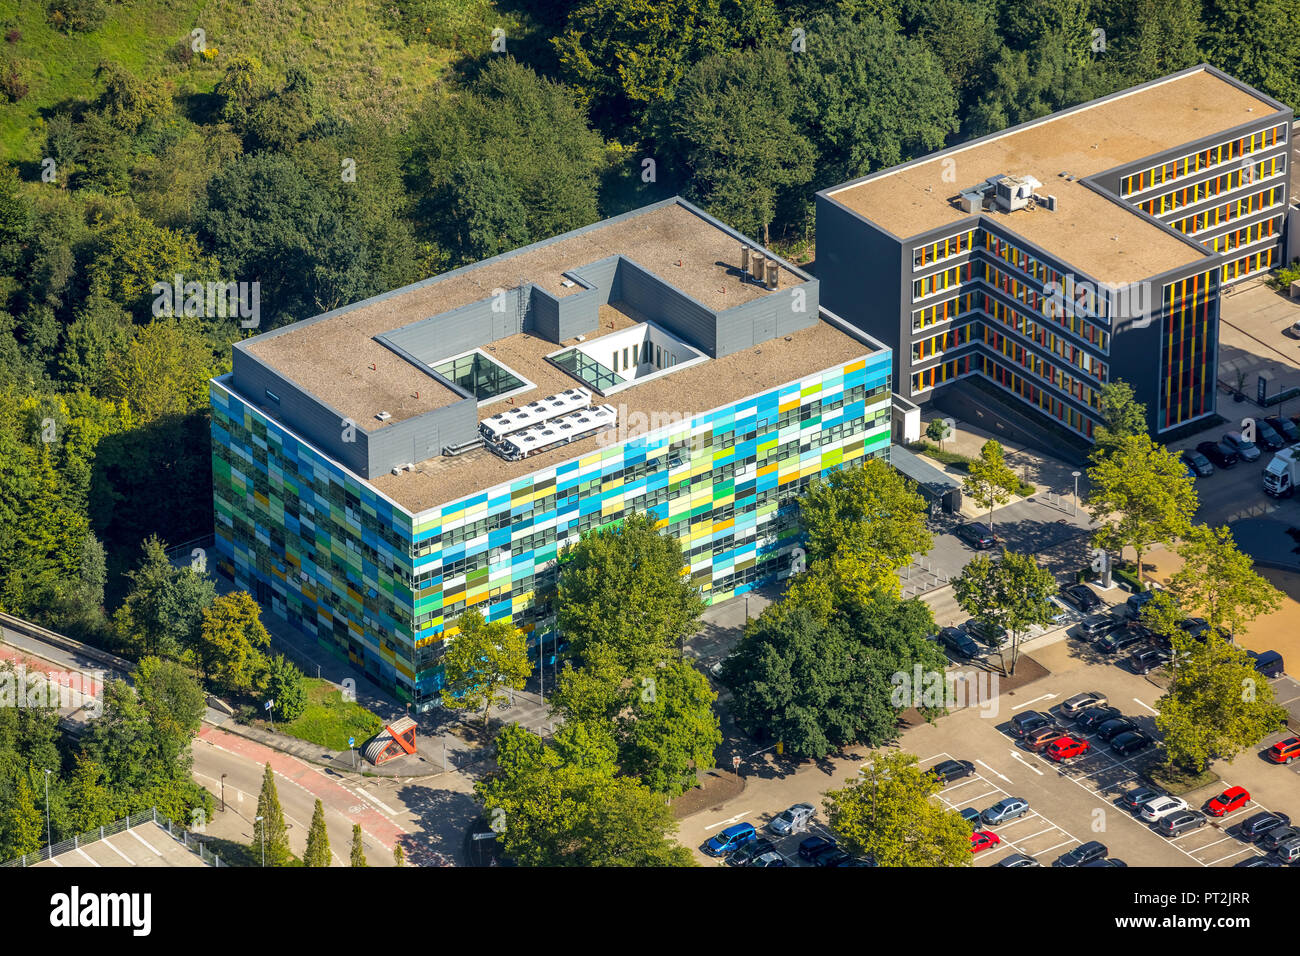 BioMedicine Center at the Ruhr University Bochum, Bochum, Ruhr Area, North Rhine-Westphalia, Germany - Stock Image